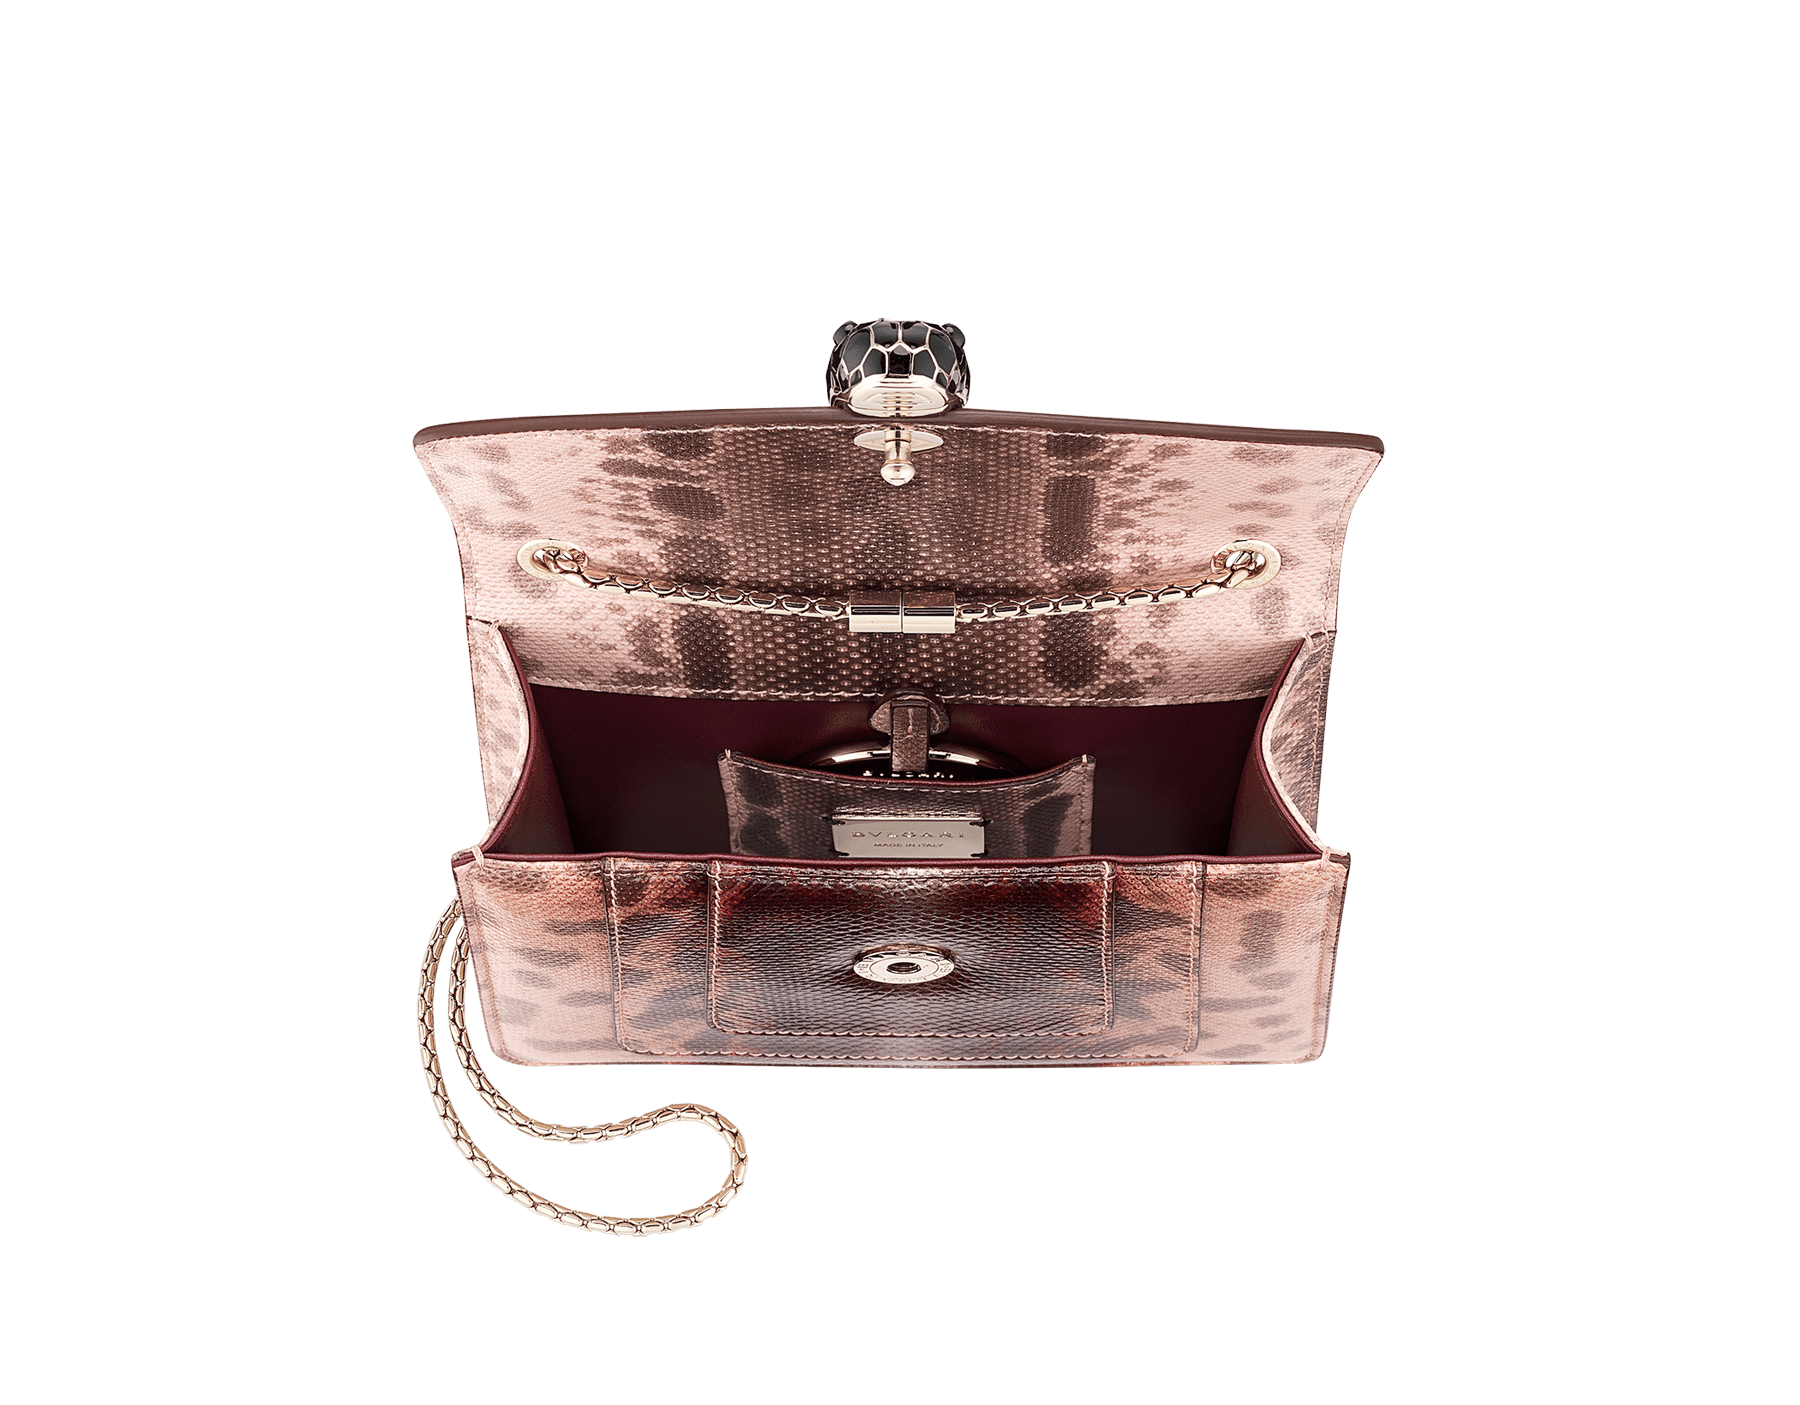 Serpenti Forever crossbody bag in rosa di francia Sahara karung skin. Iconic snakehead closure in light gold plated brass embellished with Roman garnet and black enamel and black onyx eyes. 289012 image 4